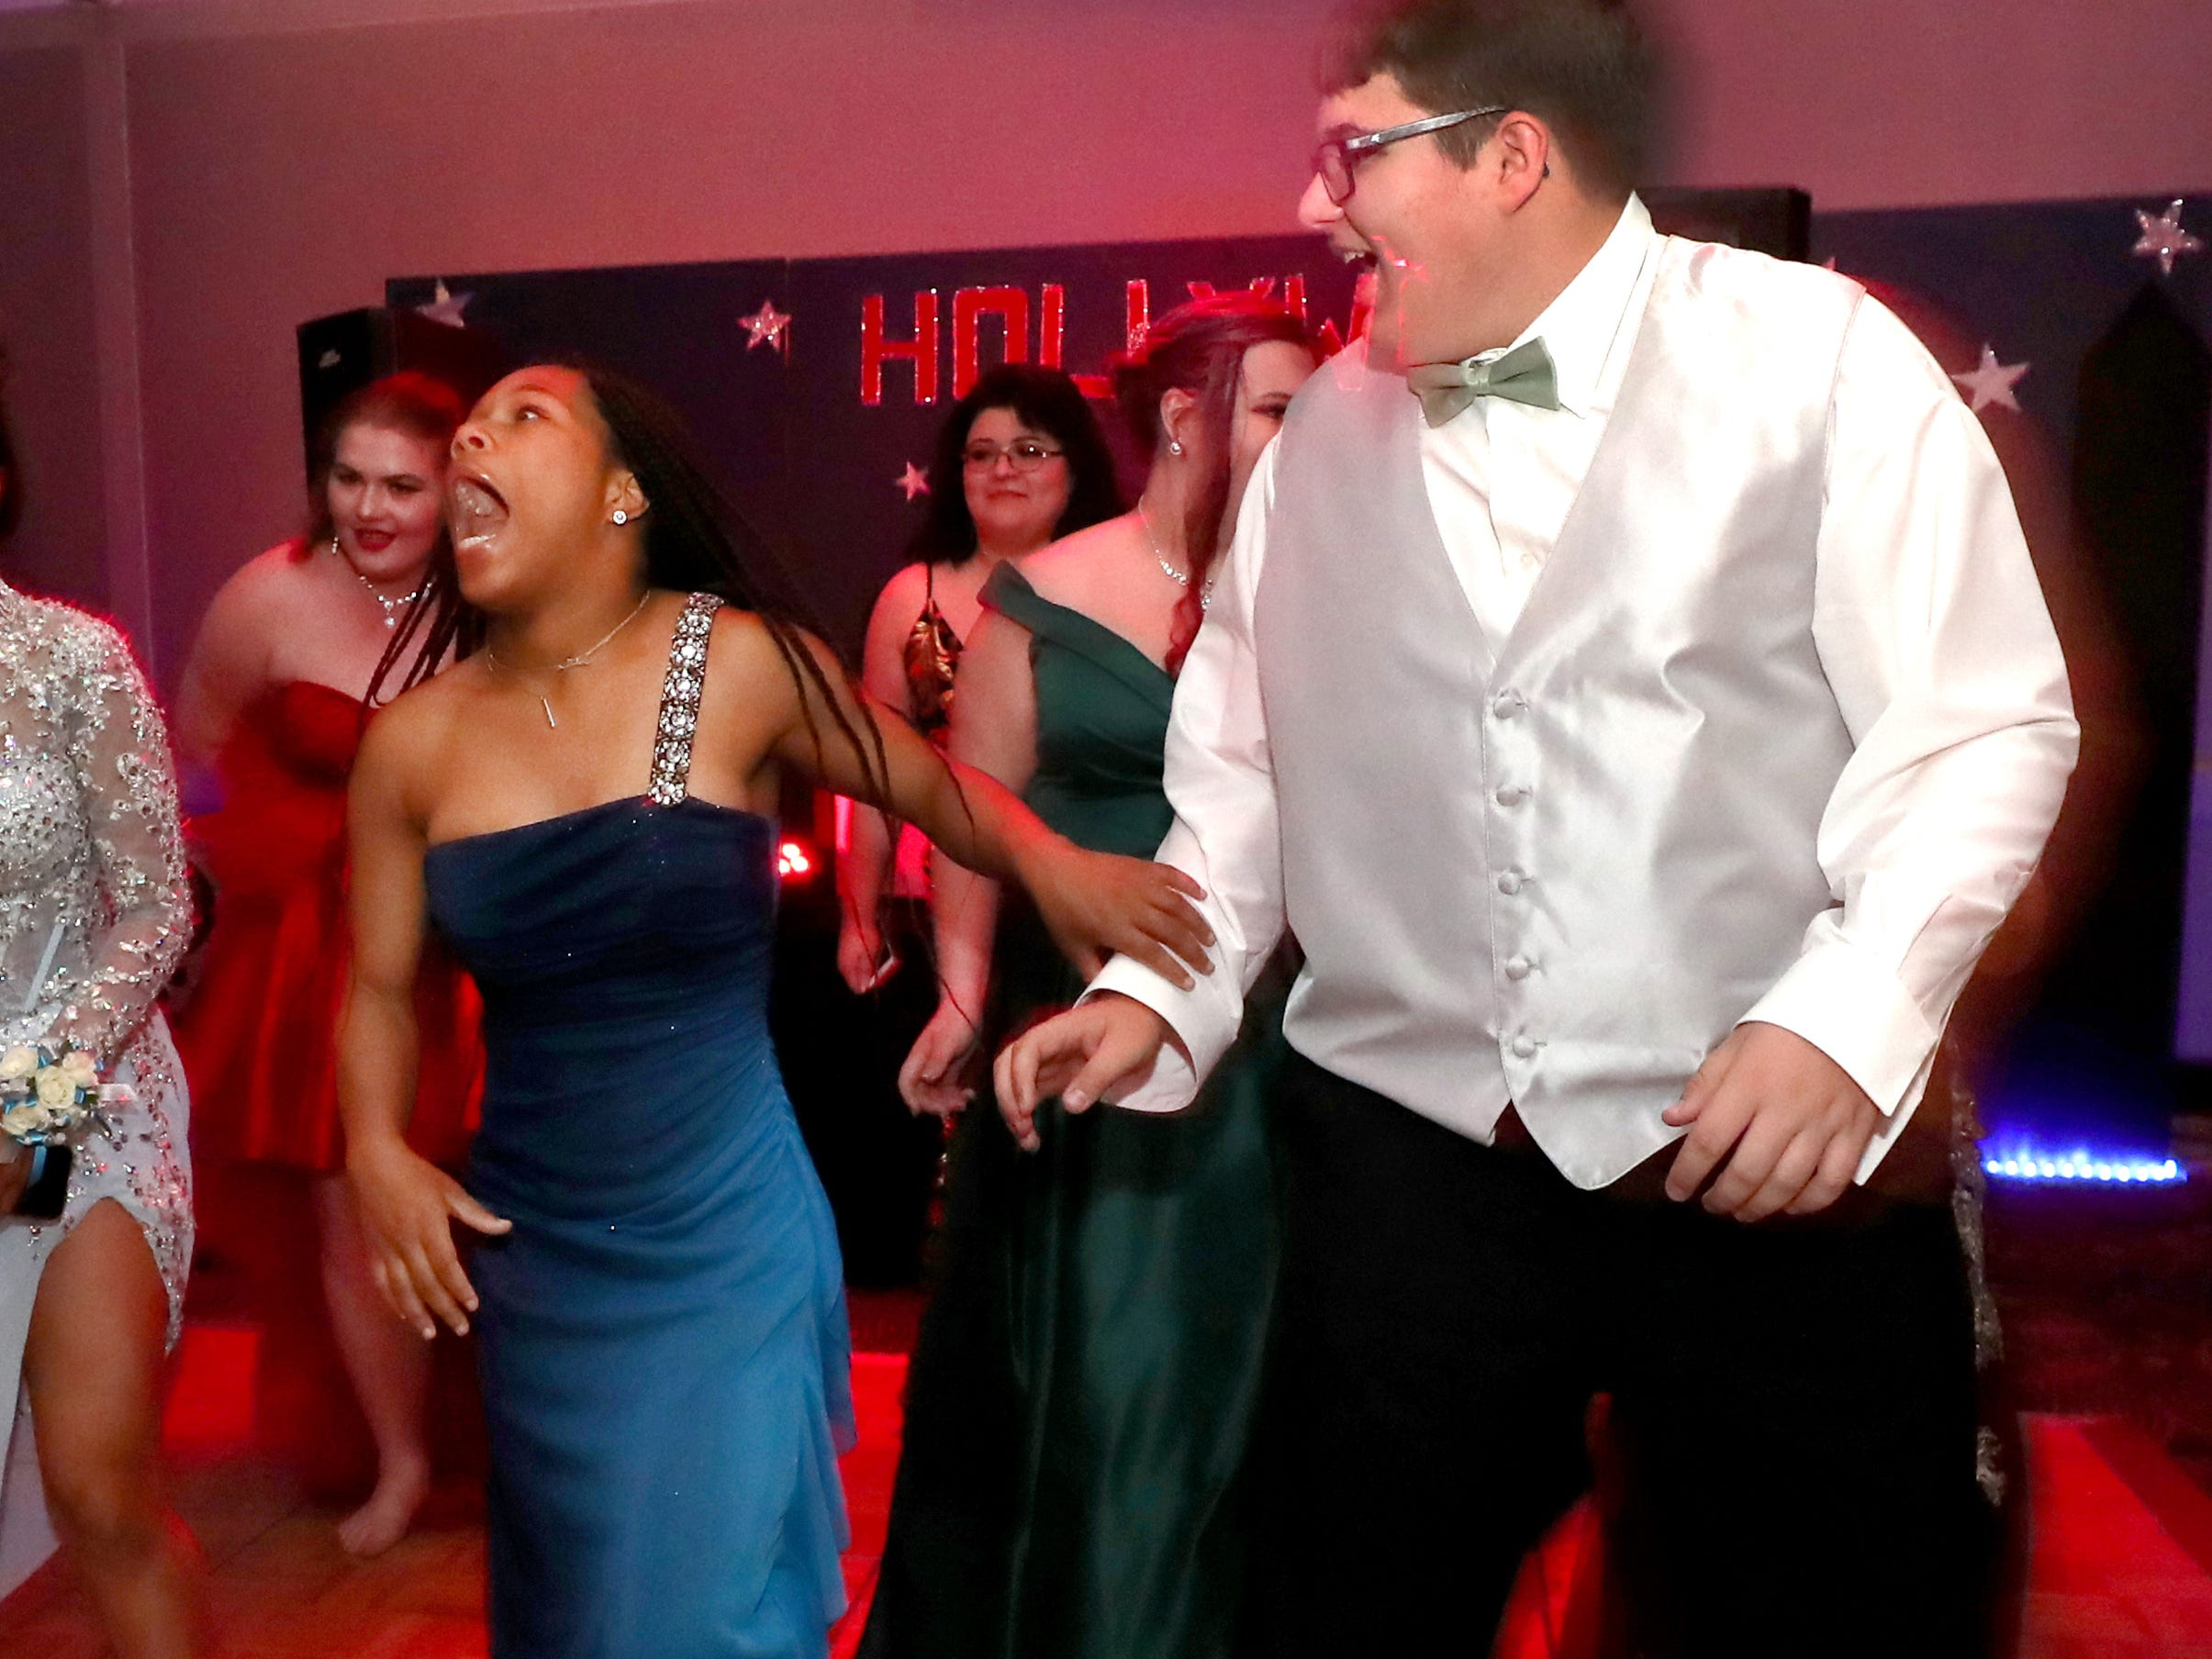 Tiara Lewis, left, and Nate Steinhurst, right dance on the dance floor at Holloway's prom at the DoubleTree on Thursday April 18, 2019.